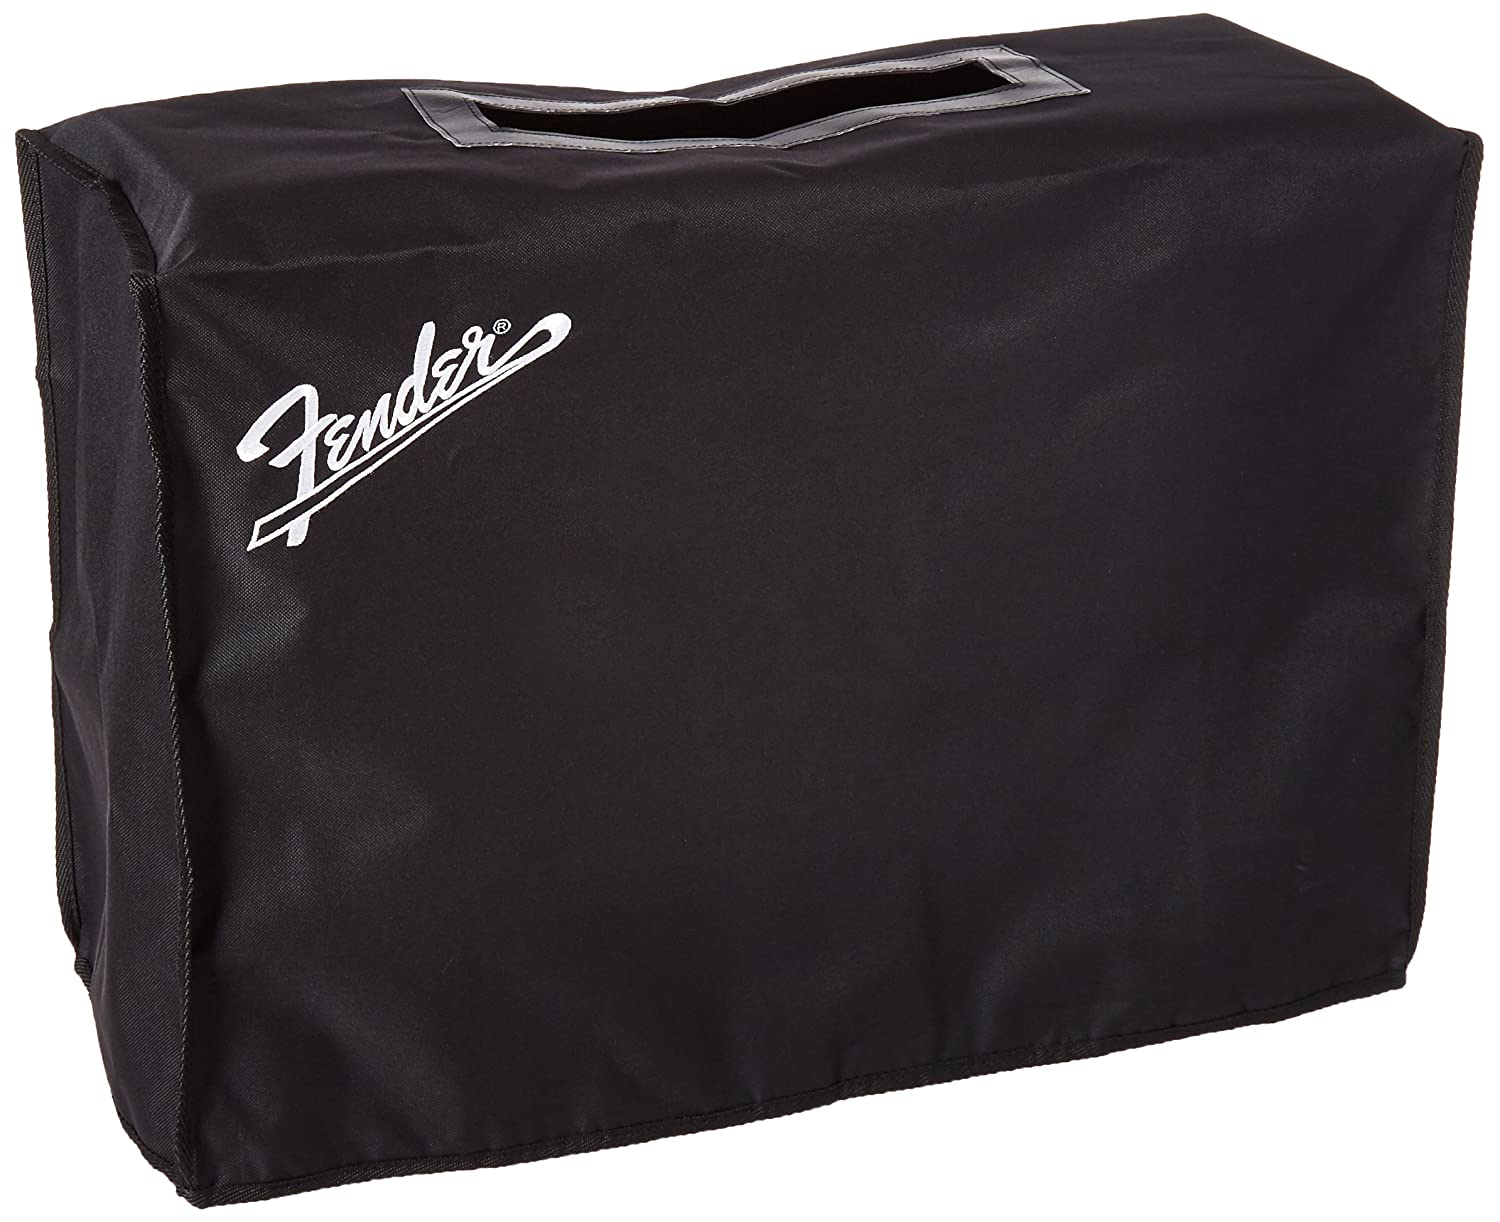 Fender 004-7483-000 '65 Deluxe Reverb/Super-Sonic 22 Combo Amplifier Cover - Black 0047483000 F0047483000